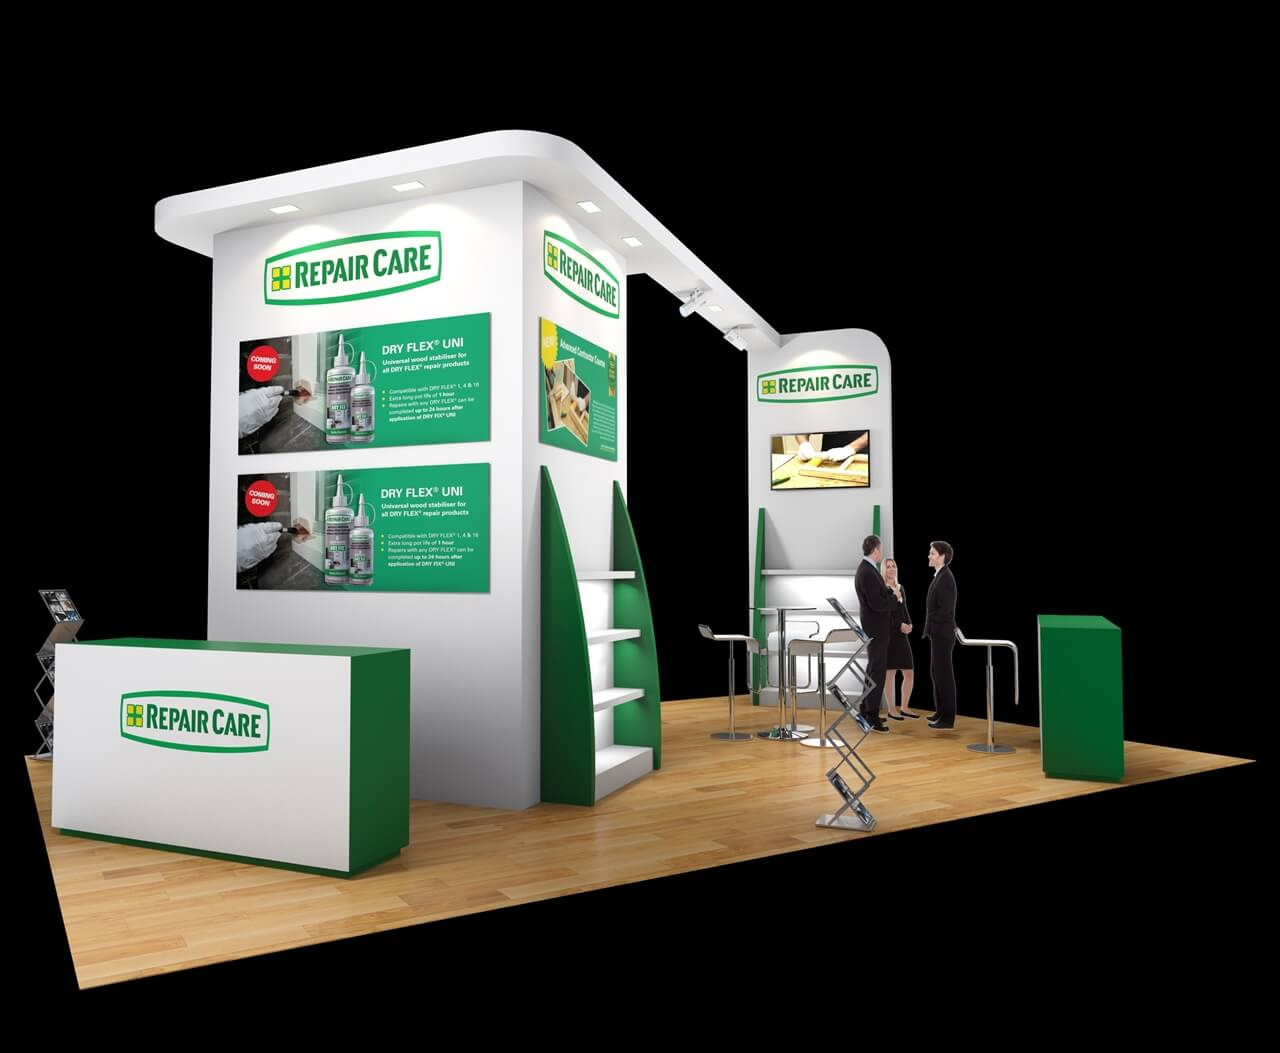 Exhibition Display Stands For Hire : Exhibition stand design designers of stands